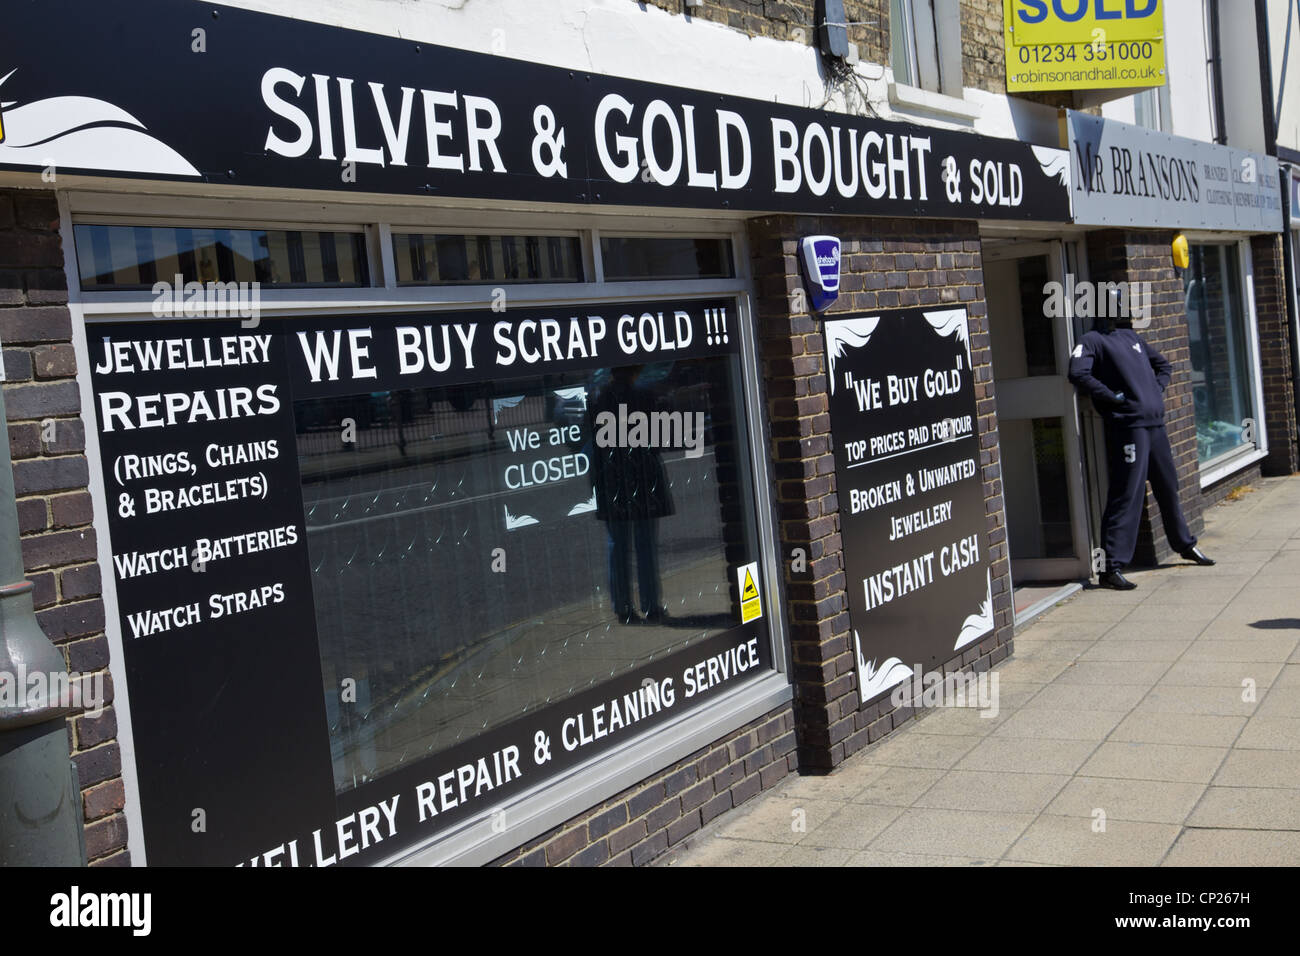 A Silver and Gold shop in Biggleswade, England - Stock Image